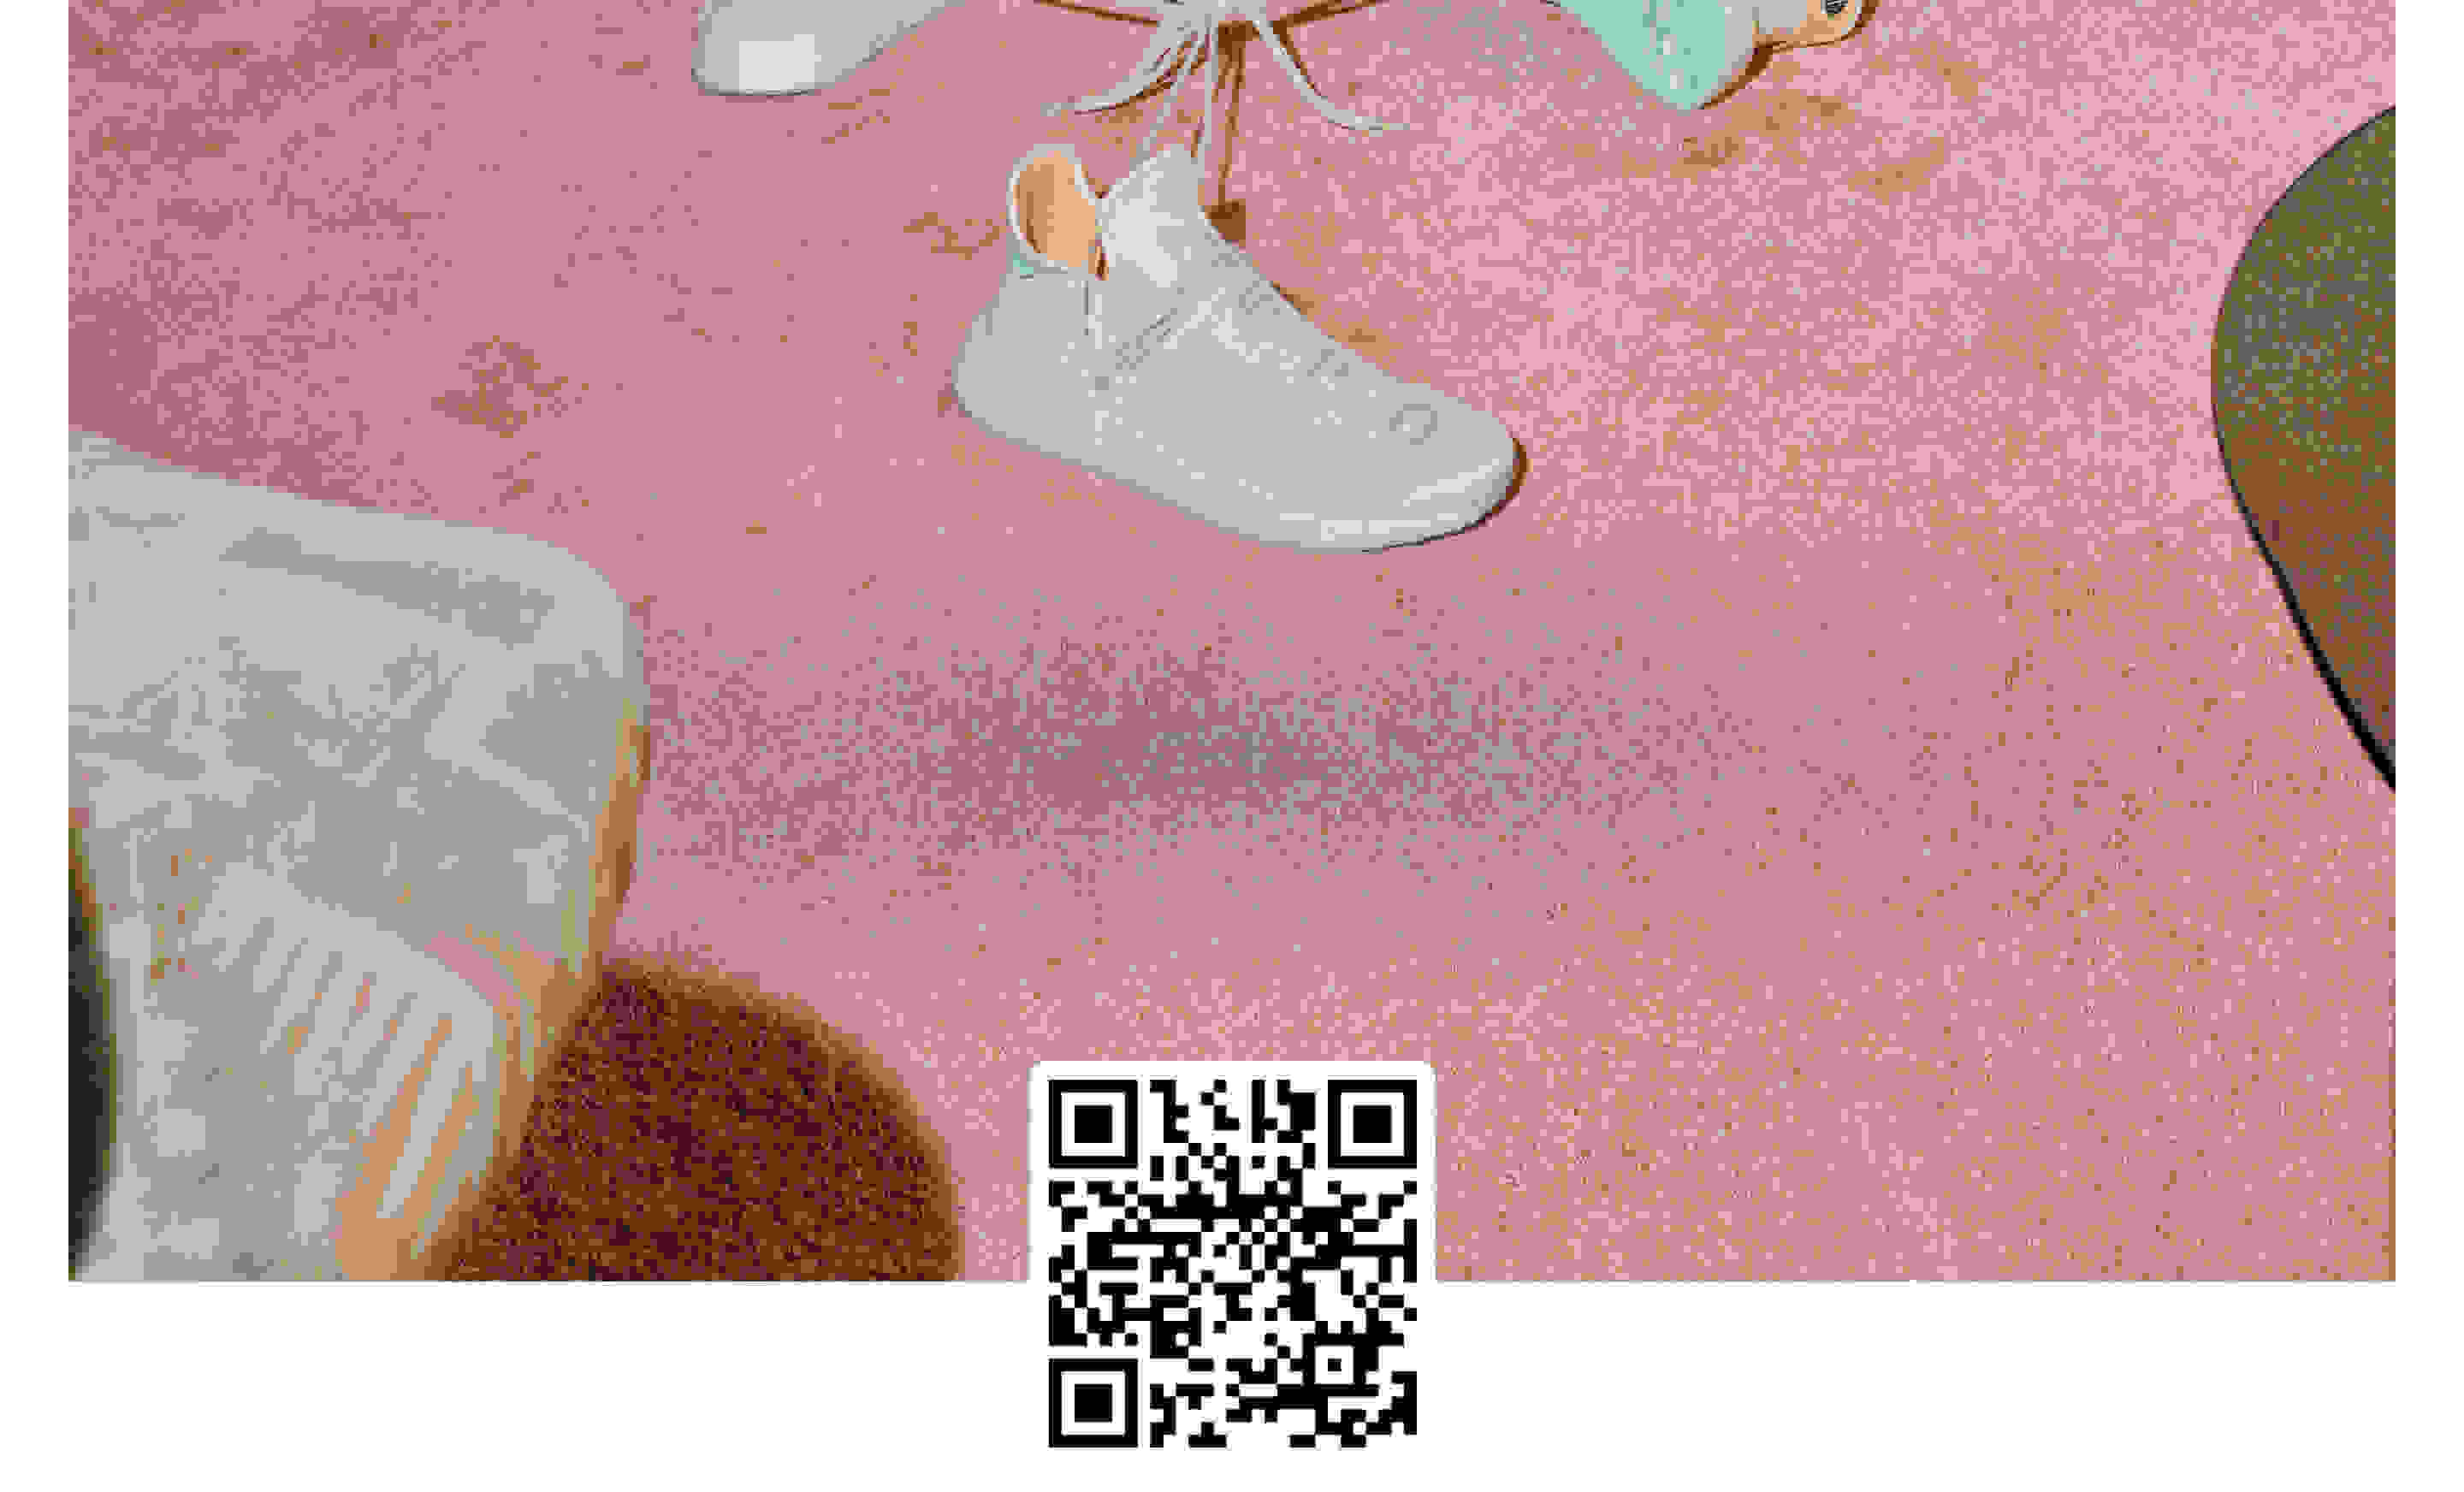 The HU NMD N.E.R.D. sits on a pink carpet. The chalk-coloured Primeknit upper with N.E.R.D. embroidery in English and Japanese is in focus.